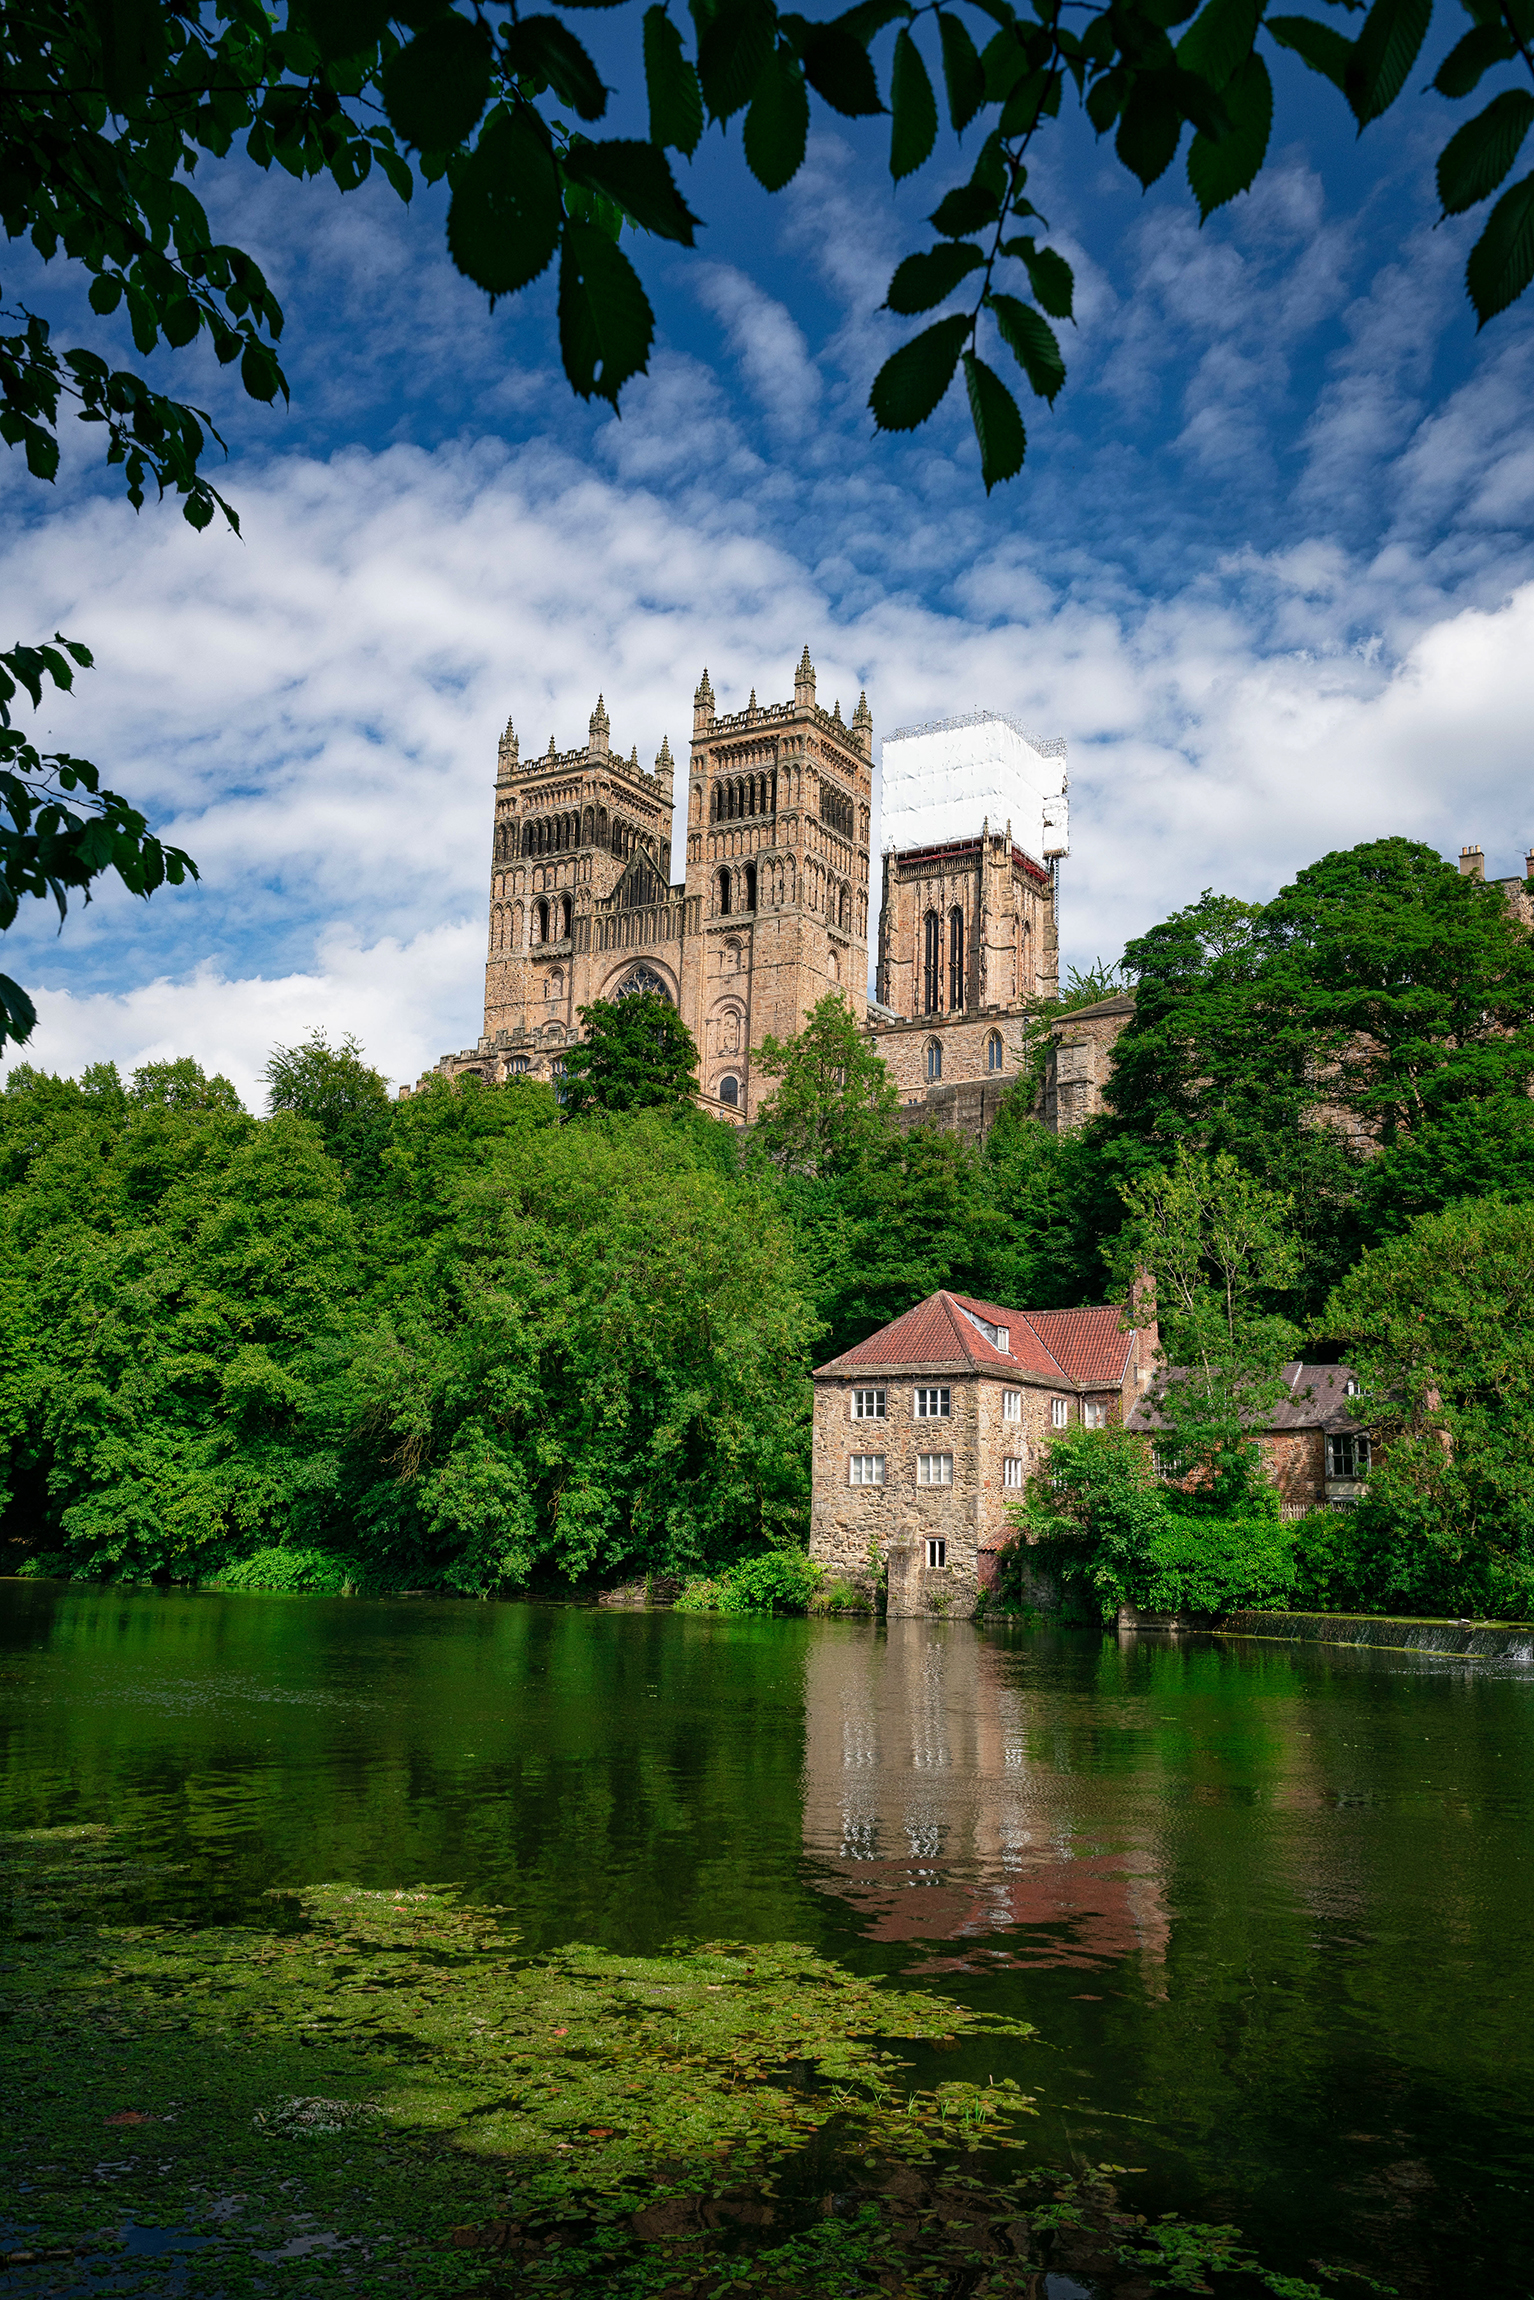 #durham, #durhamuk, #durhamcathedral, #wearriver, #wear, #view, #riverbank, #riverwalk, #landscape, #architecture, #bluesky, #clouds, #england, #storybook, #afternoonlight, #nikon